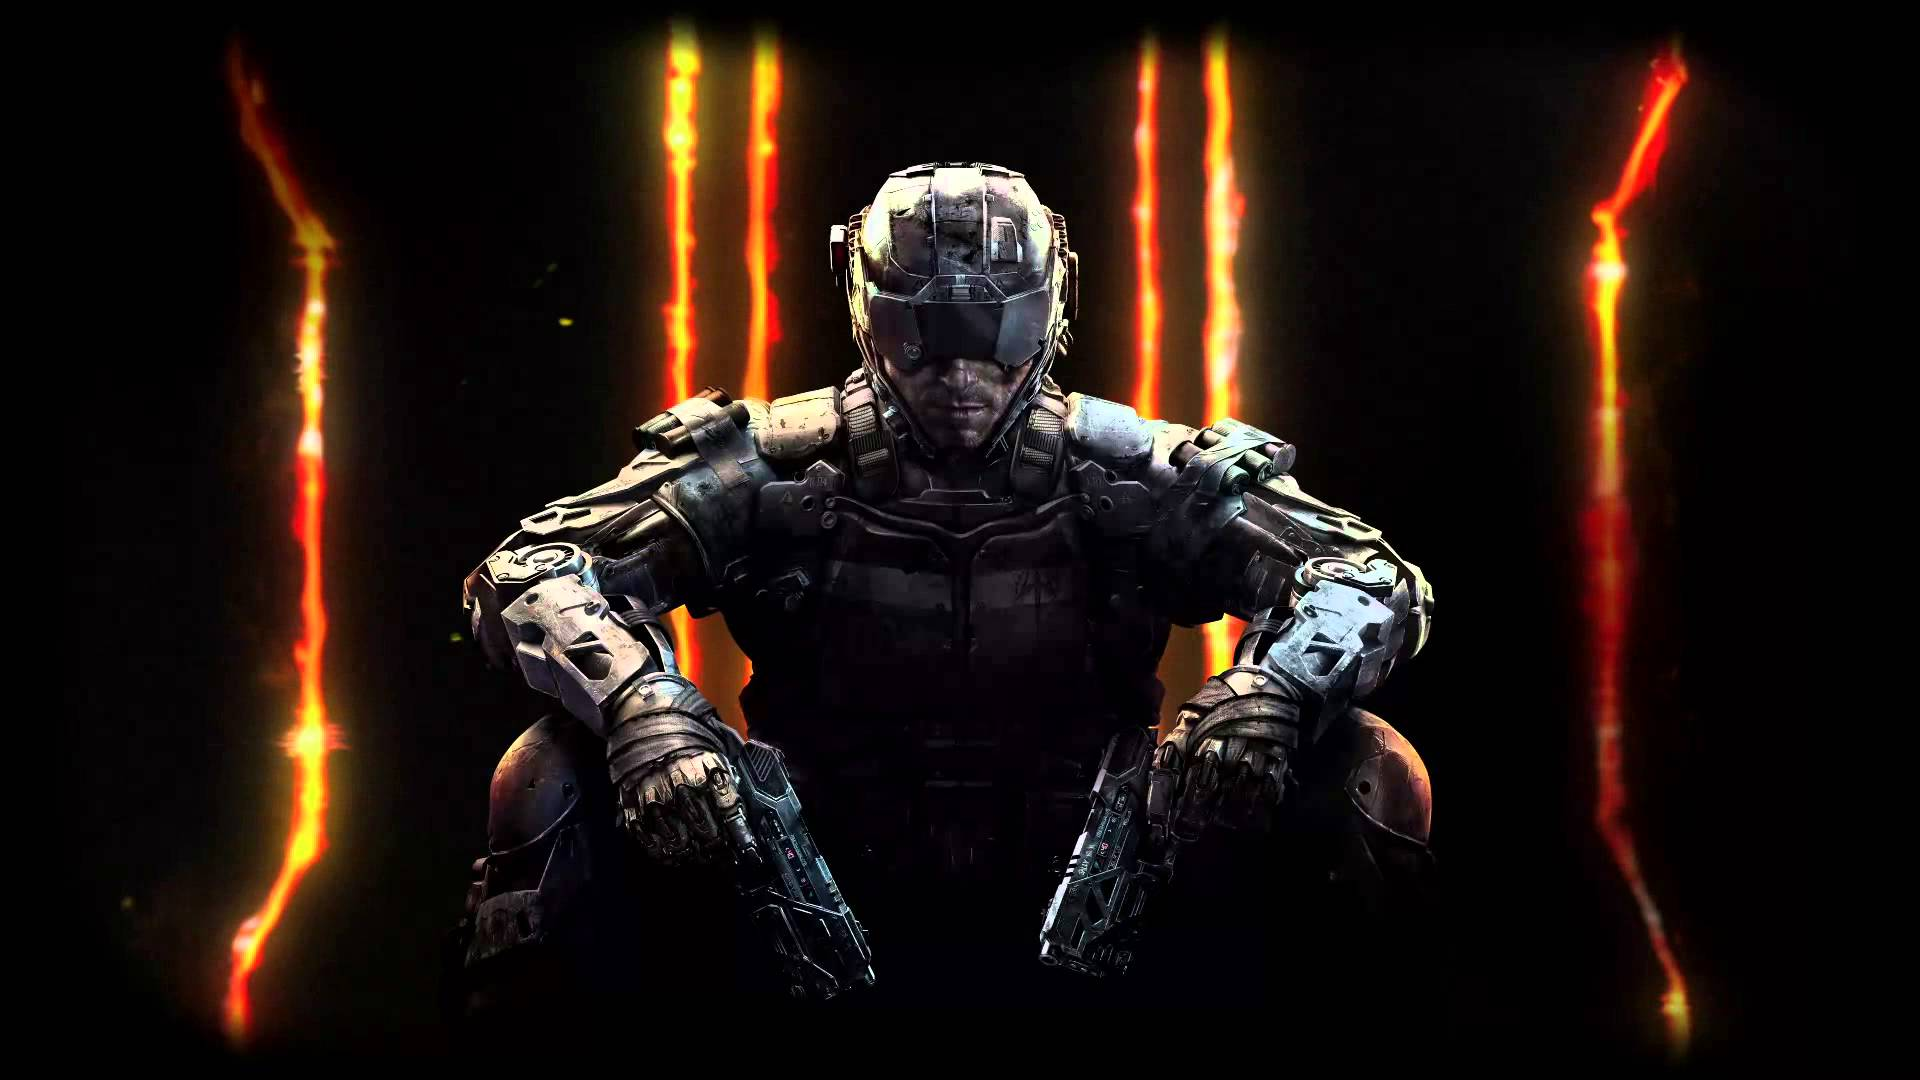 Call of Duty: Black Ops 3 Live Wallpaper - YouTube